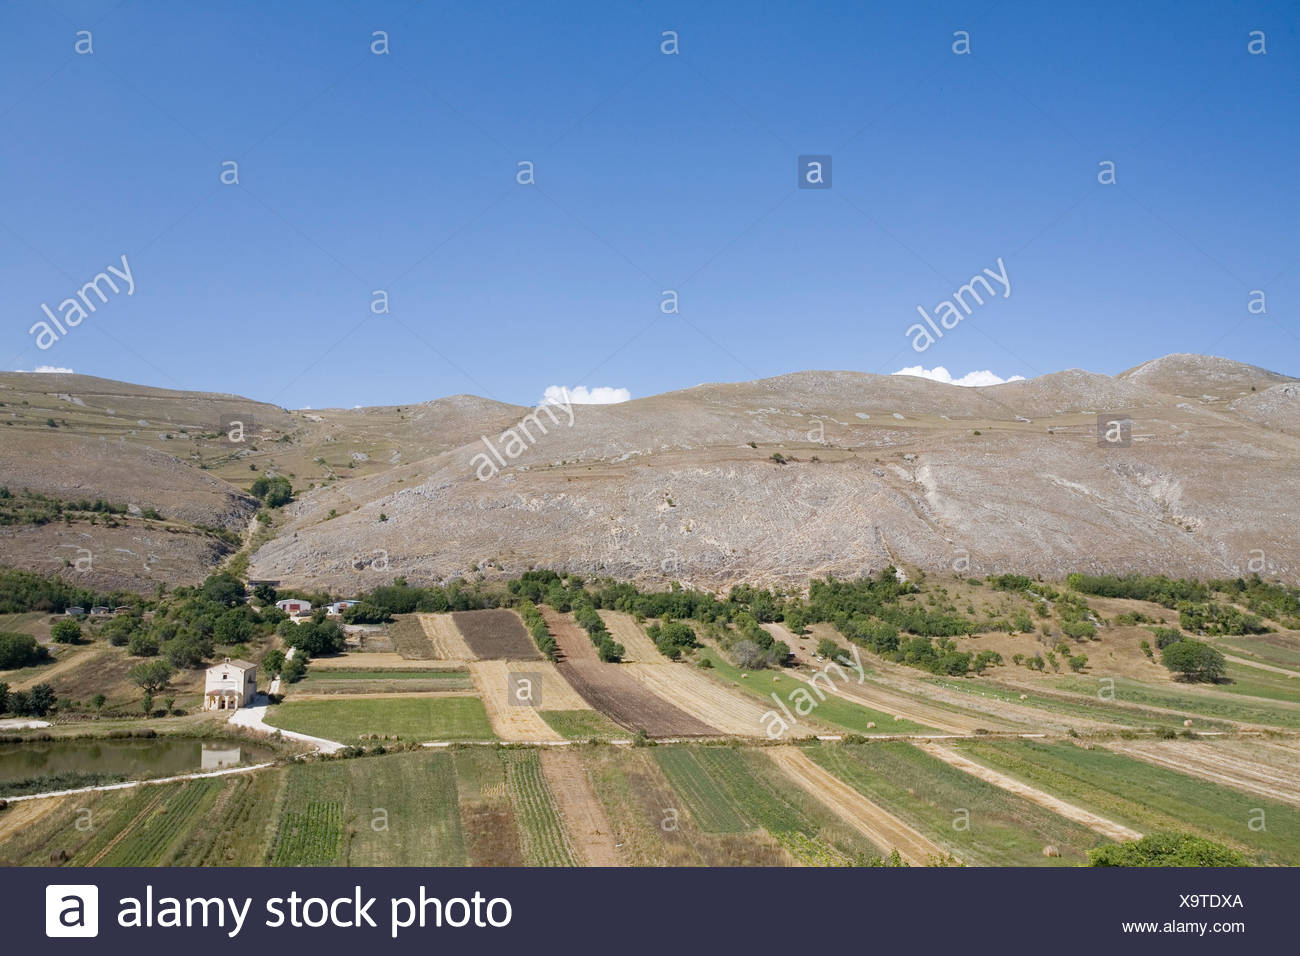 Italy, Santo Stefano, Sassonia, agricultural fields - Stock Image